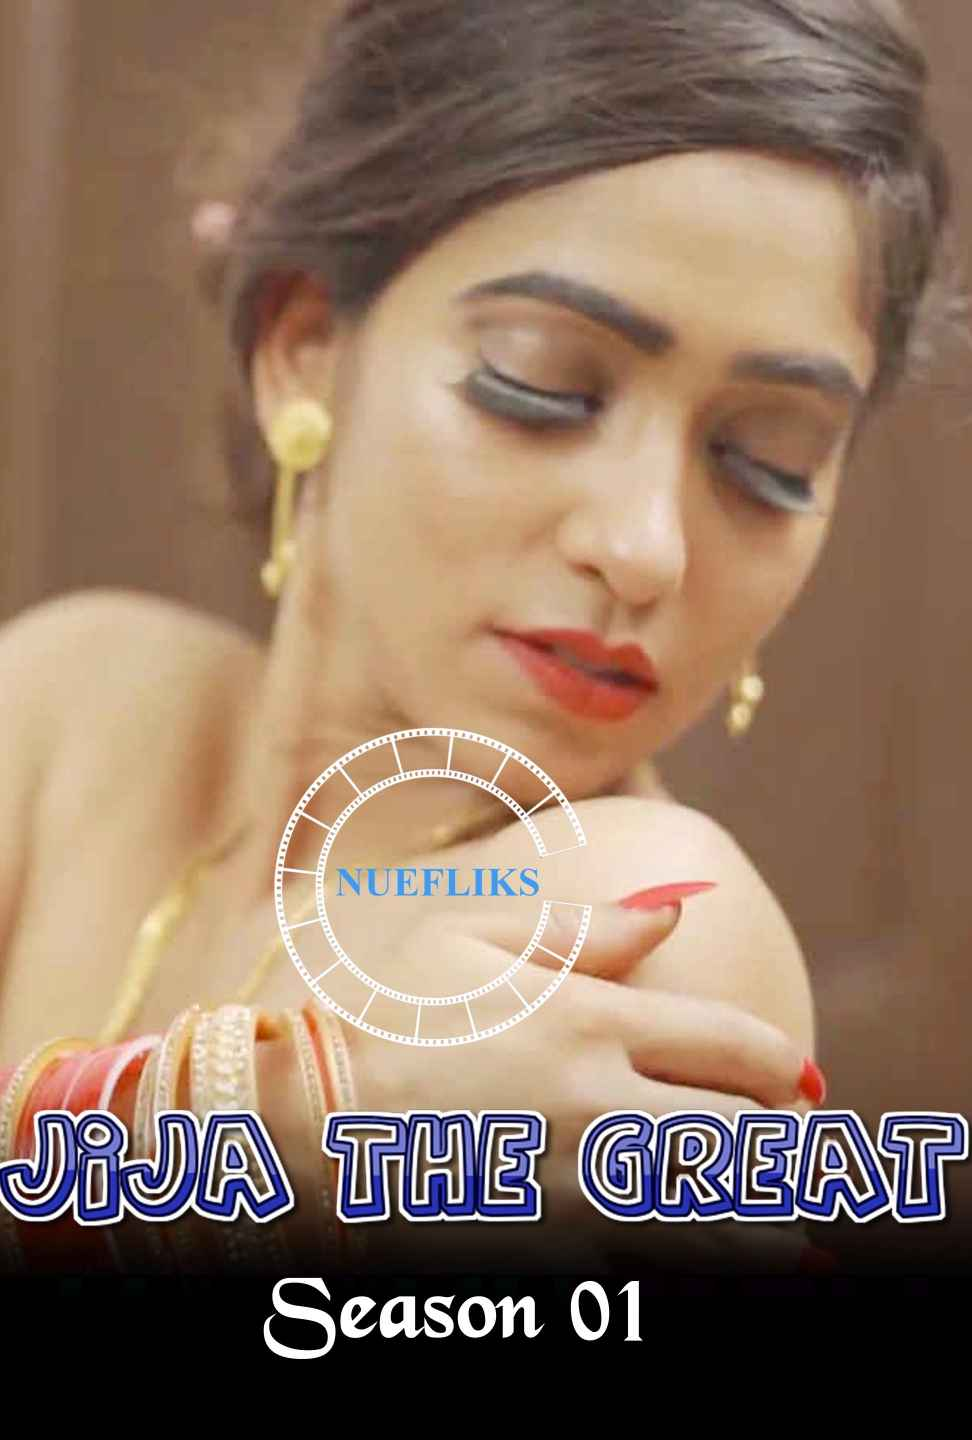 Jija The Great 2020 S01E02 Nuefliks Original Punjabi Web Series 720p HDRip 190MB x264 AAC